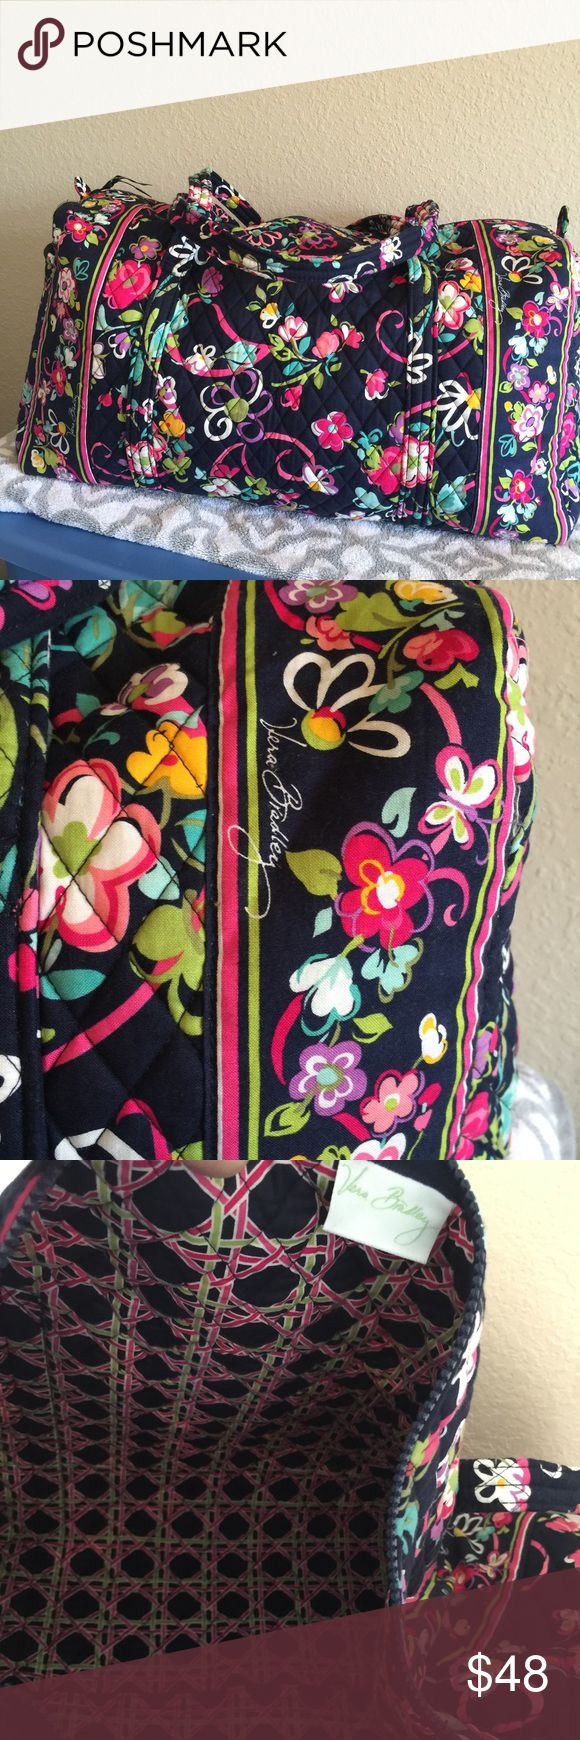 Extra Large Vera Bradley Travel duffel Gorgeous travel bag , for lots inside take it all with you. 21 x 10.5 x 11.5 Vera Bradley Bags Travel Bags